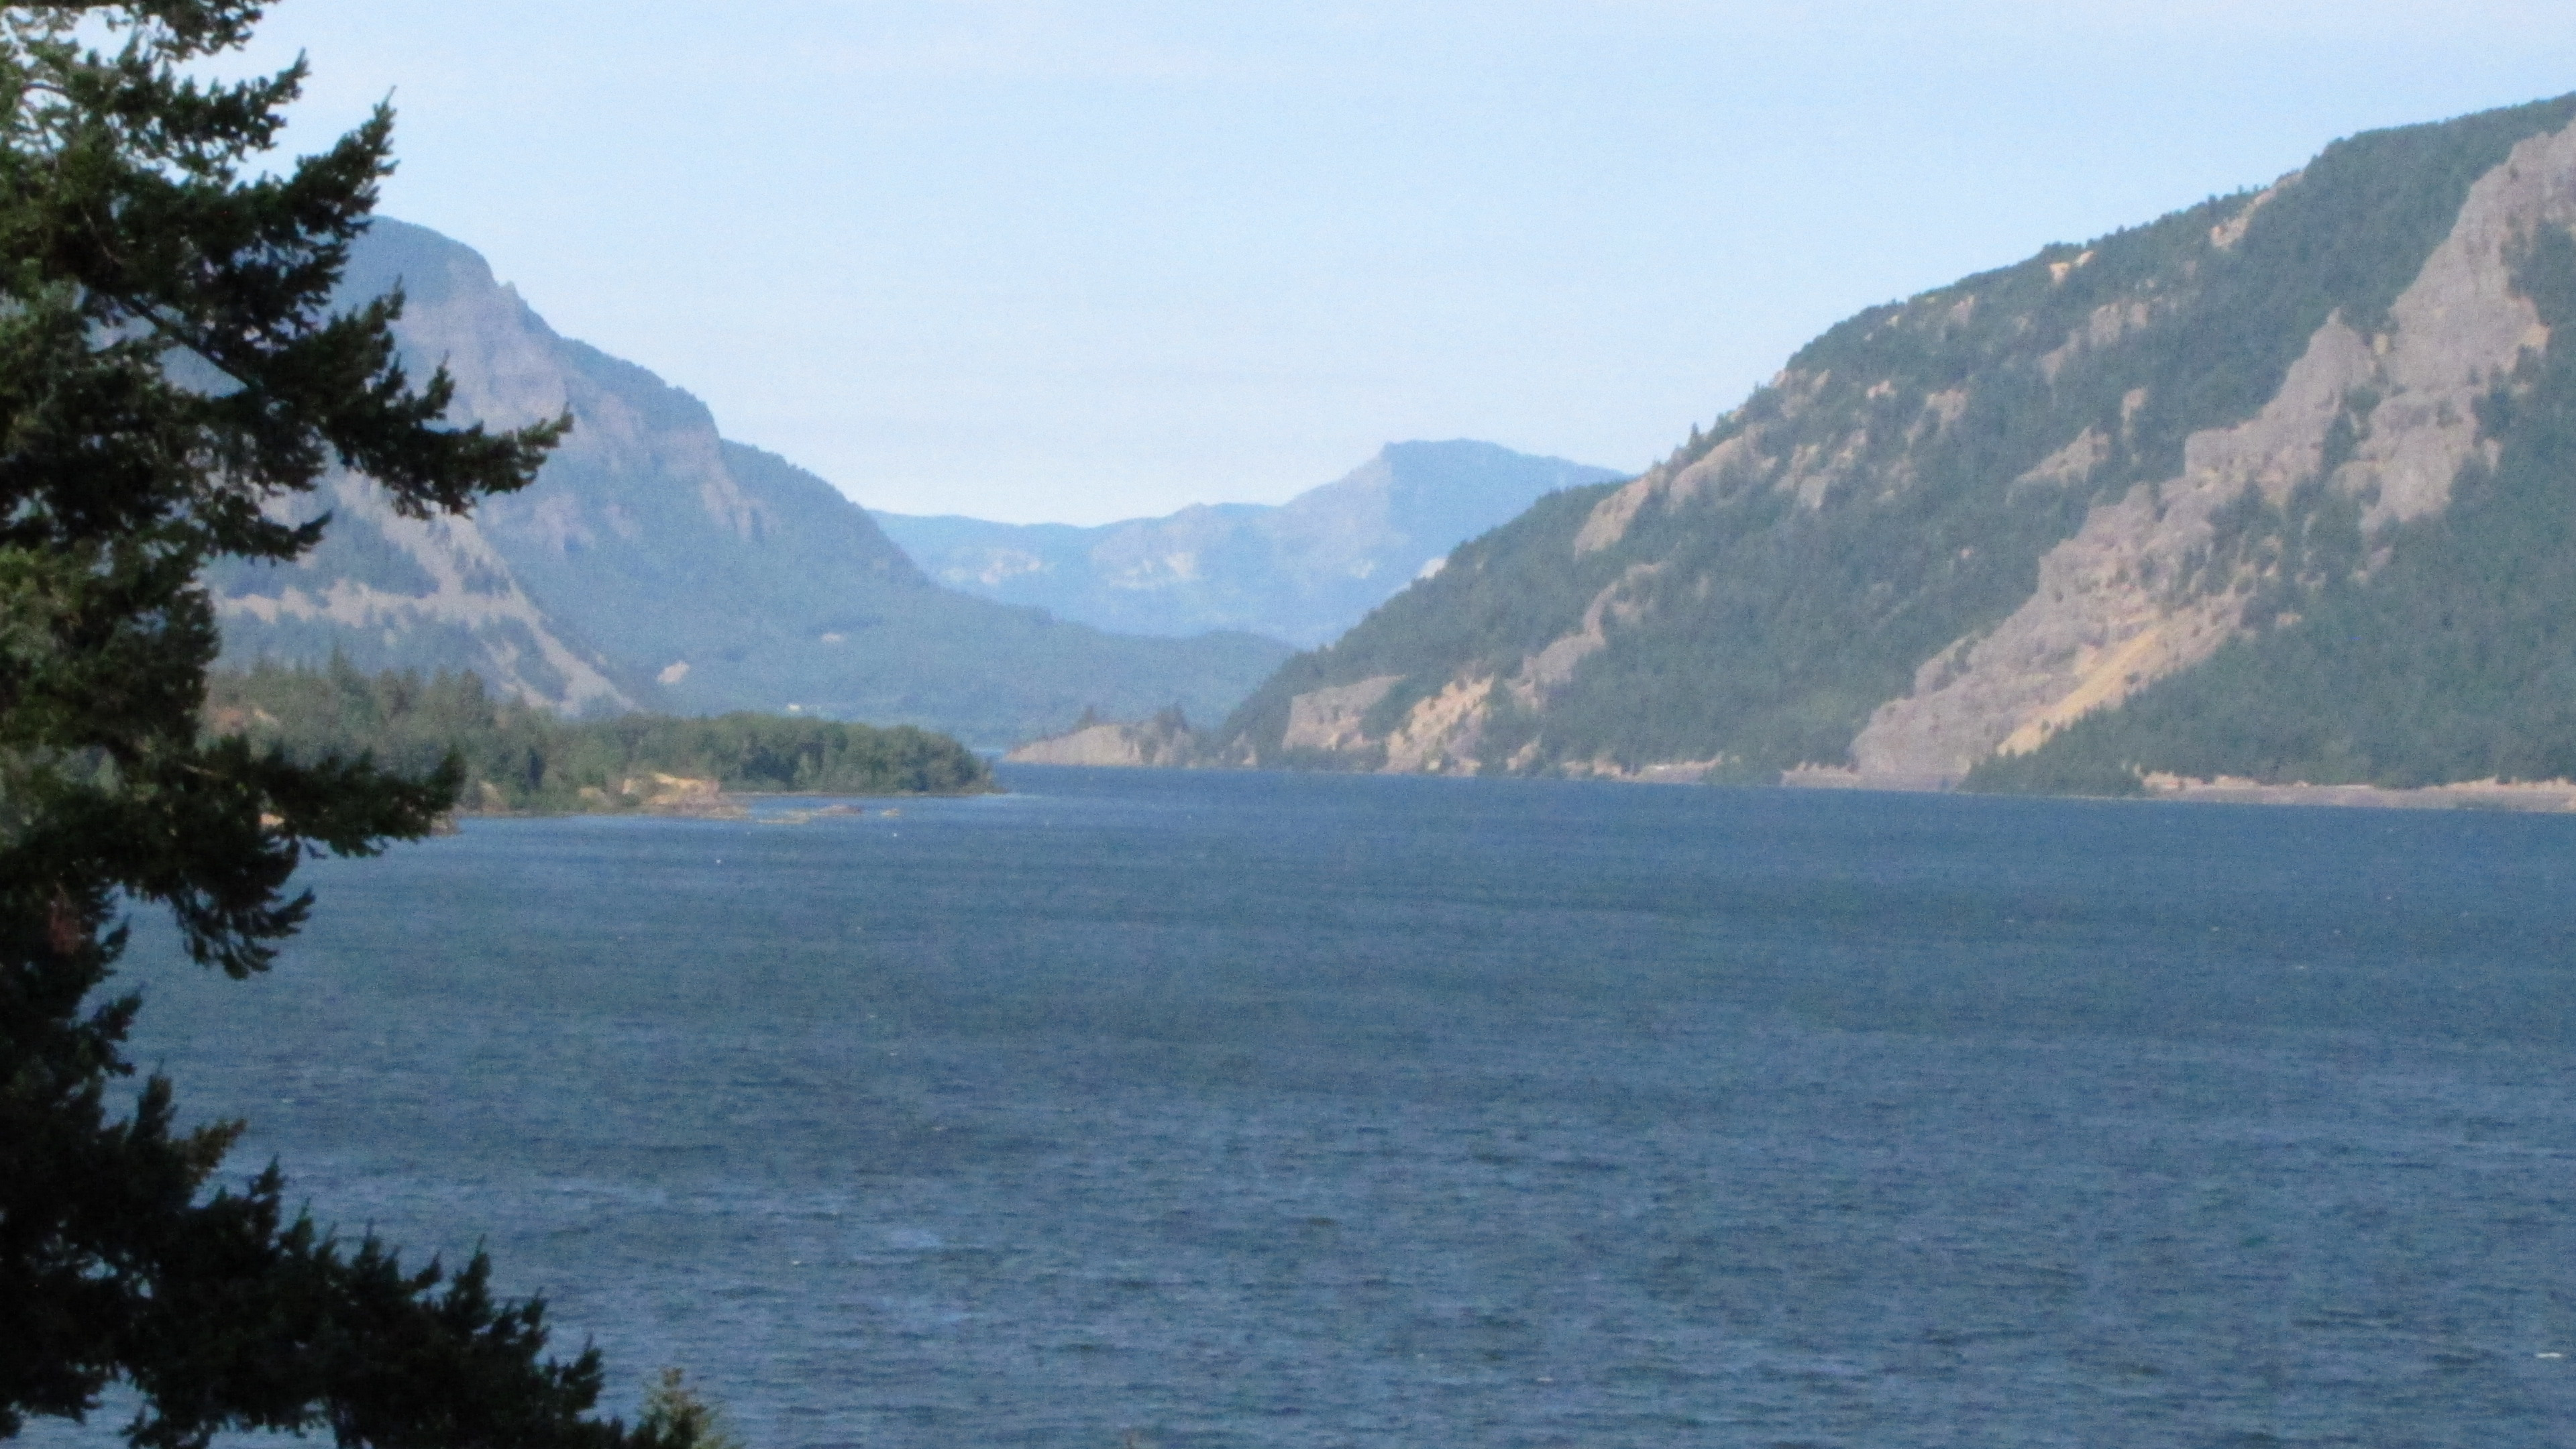 Columbia River Gorge in Oregon, 2015